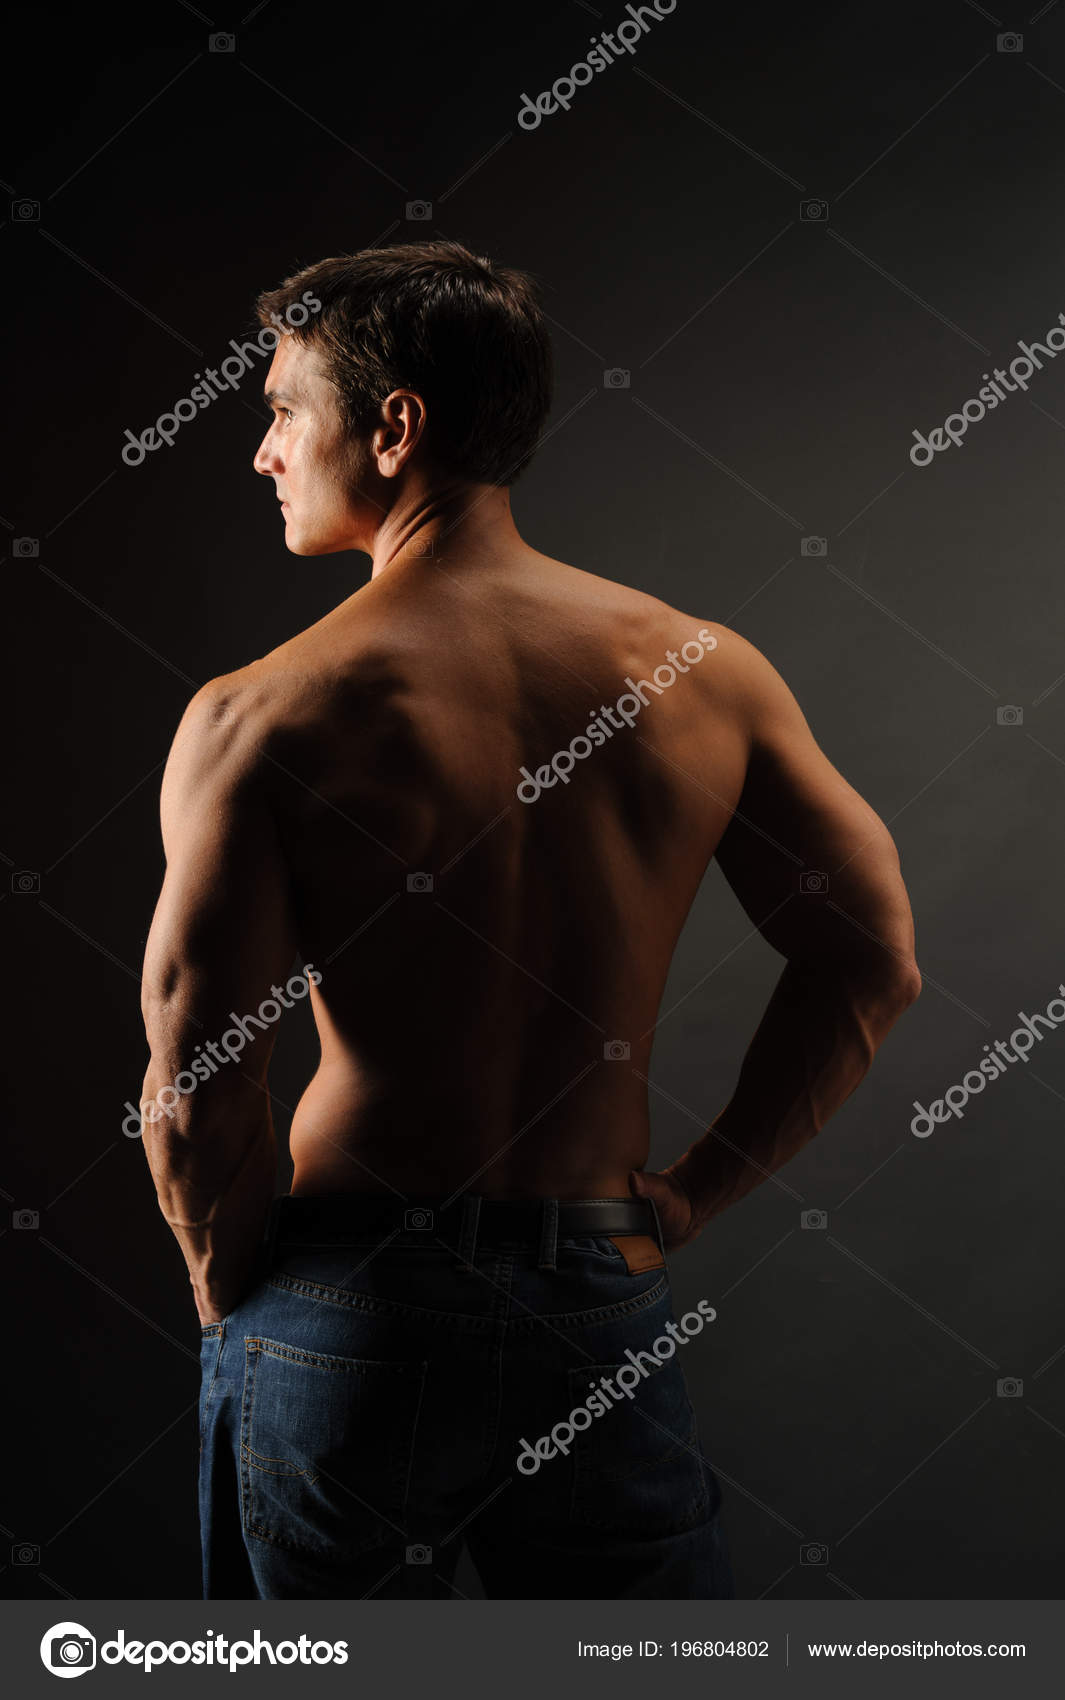 Pose hot guy Male Poses: